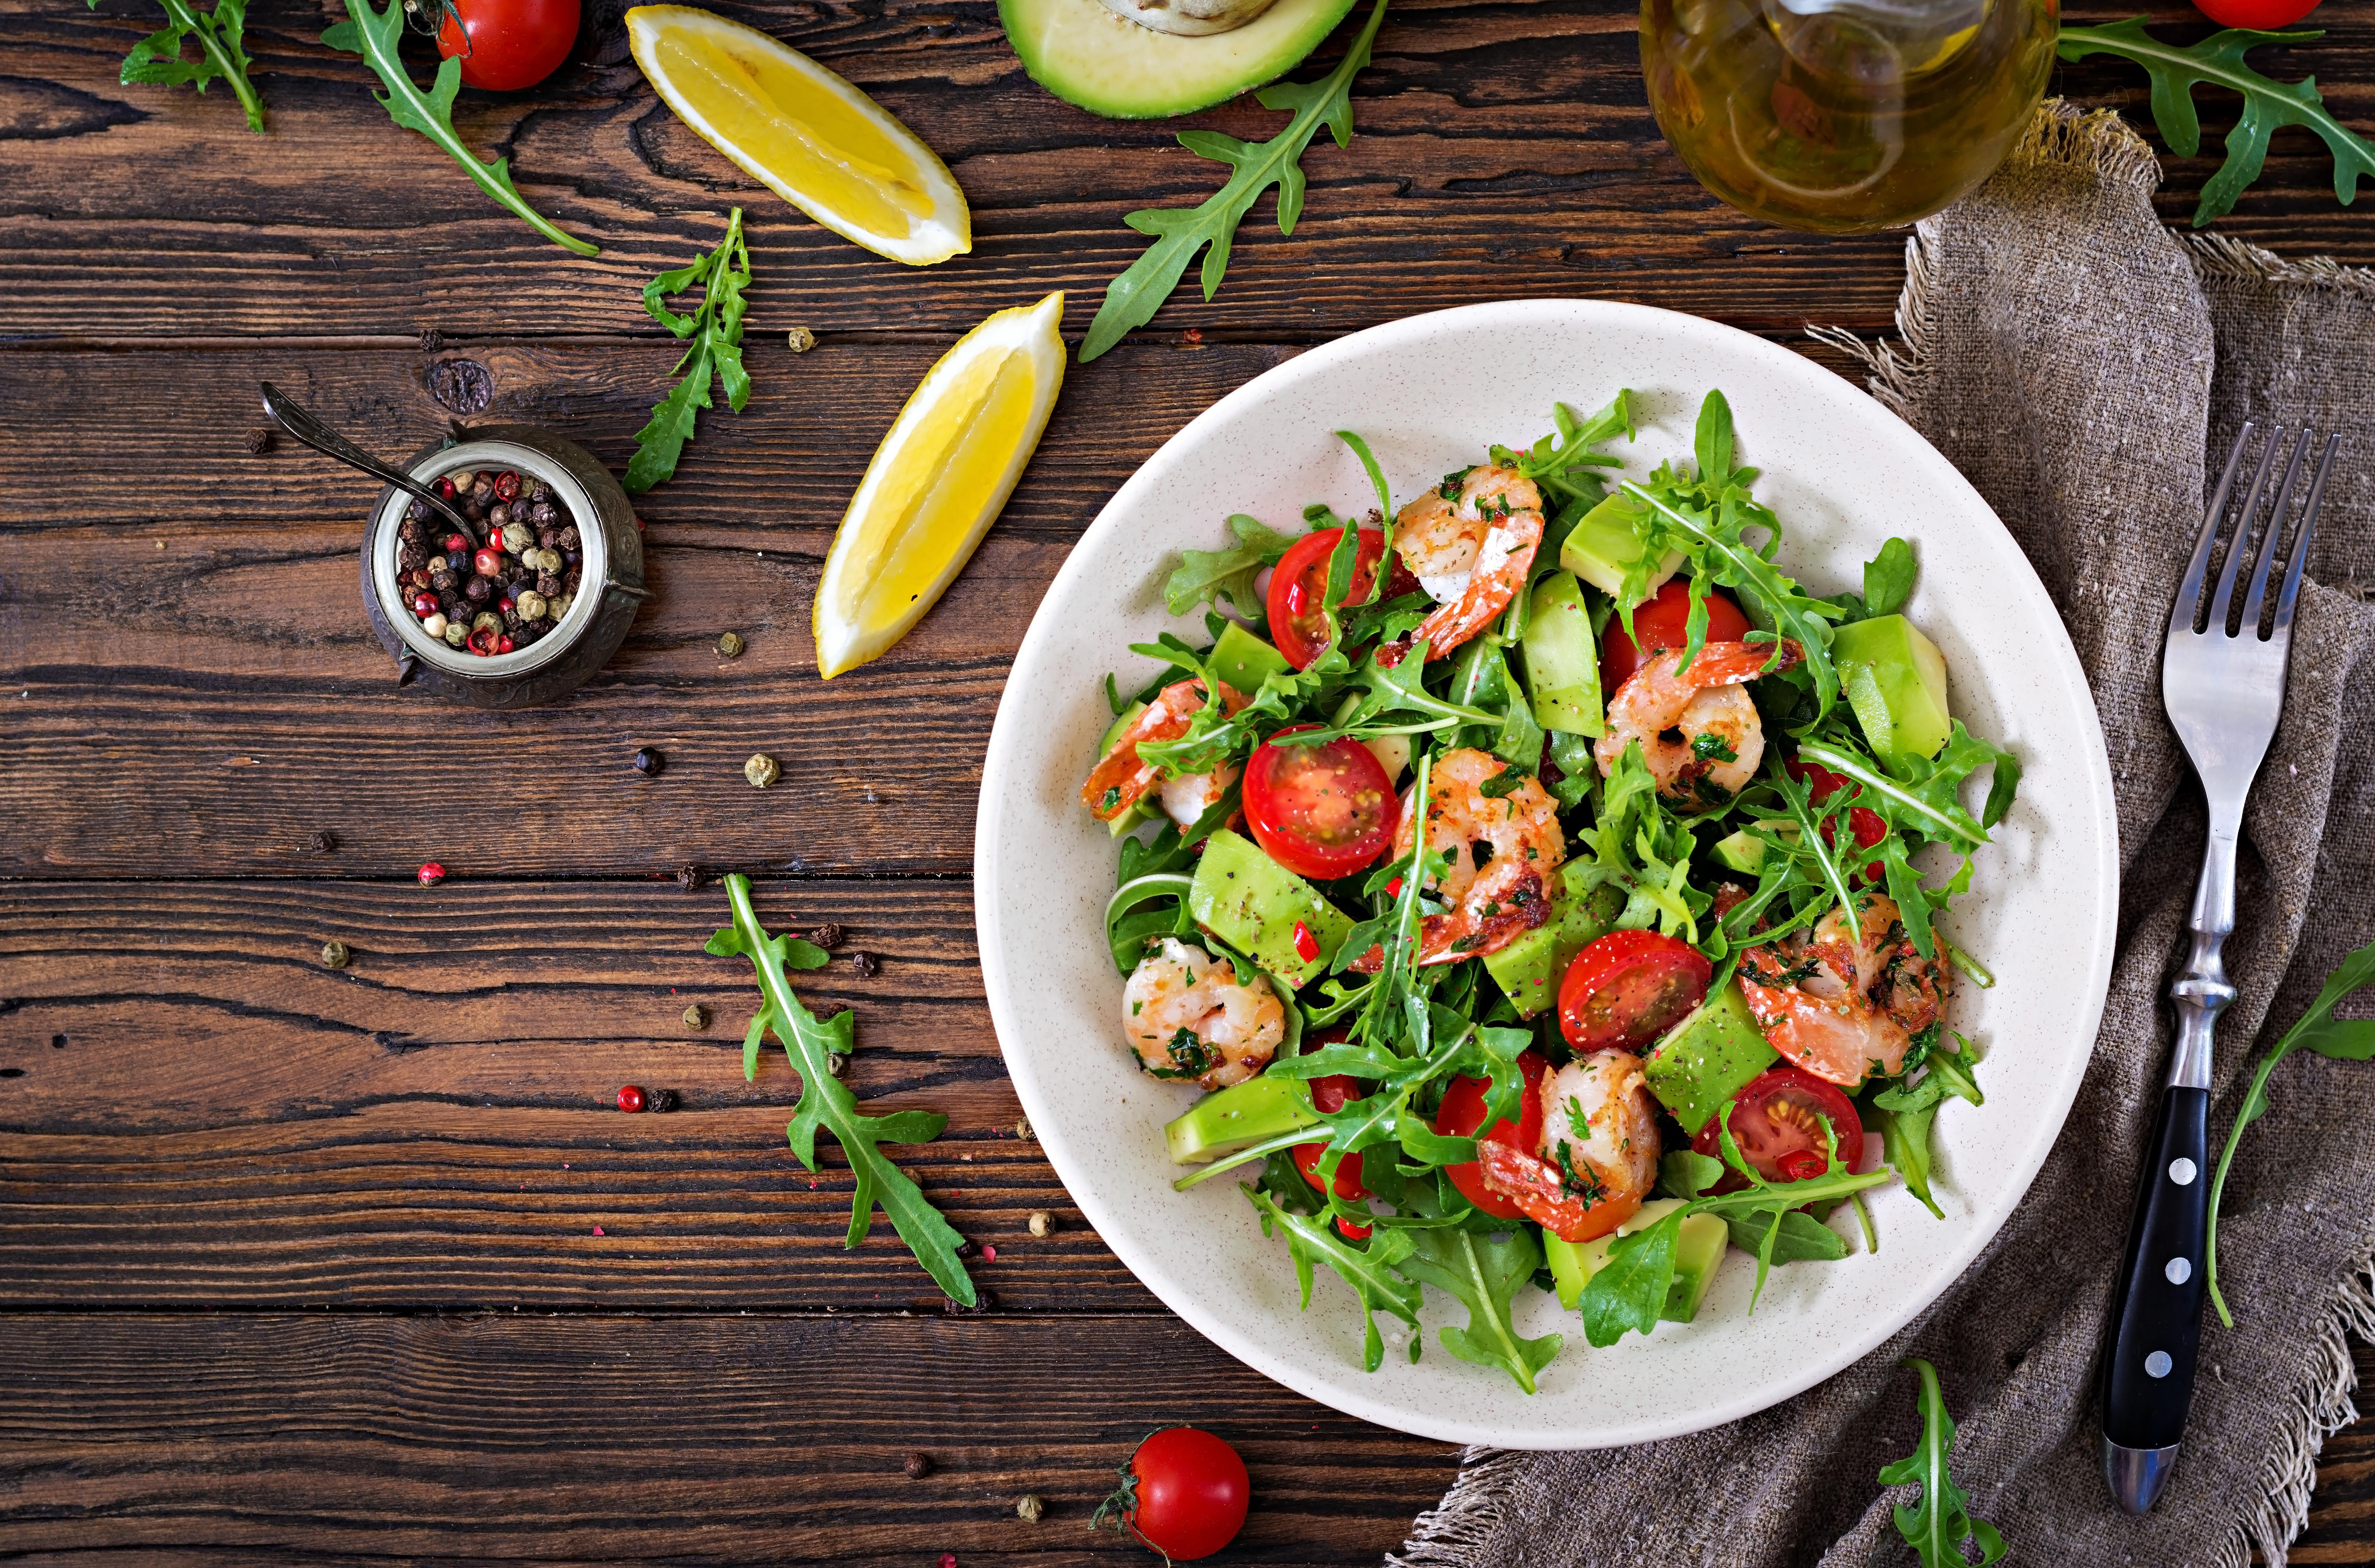 Just Salad to replace beef offerings with Beyond Meat